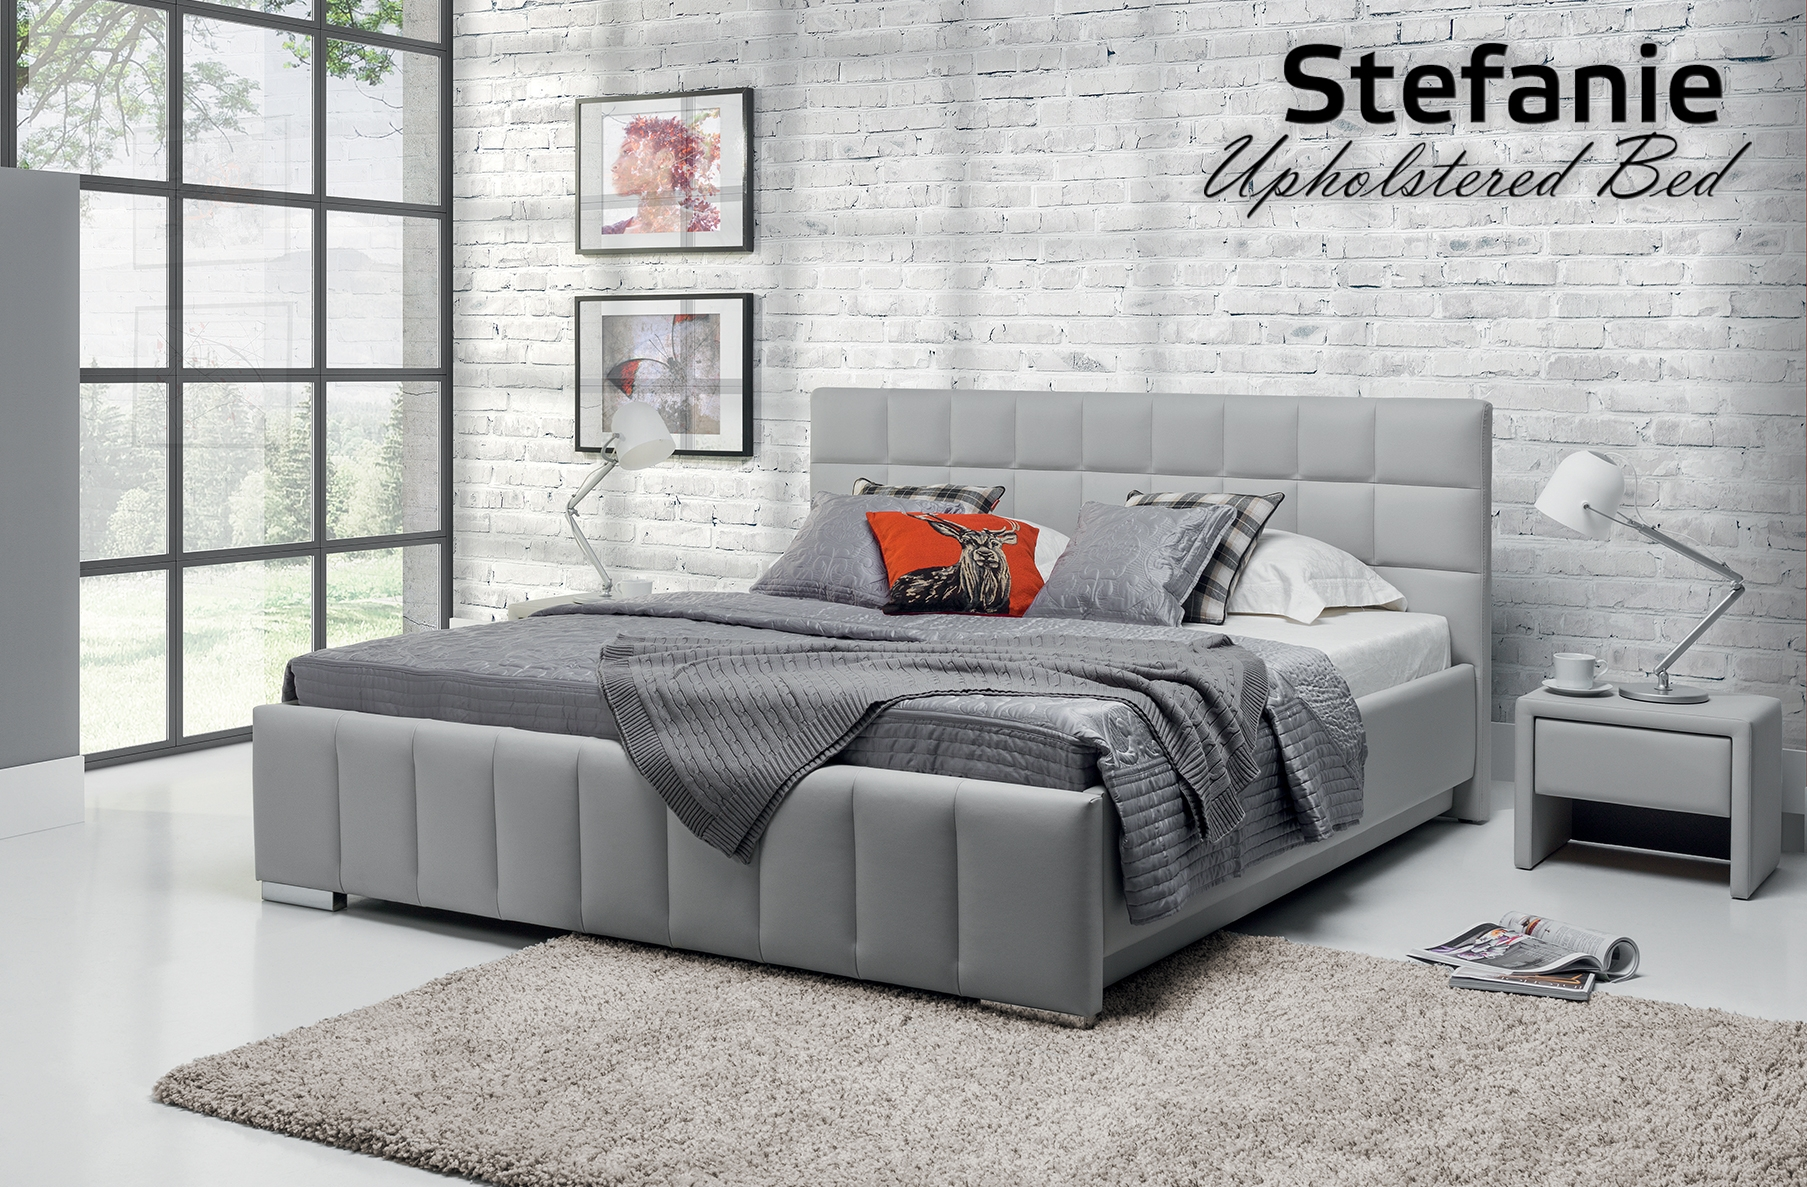 Stefanie Upholstered Bed, Cheap